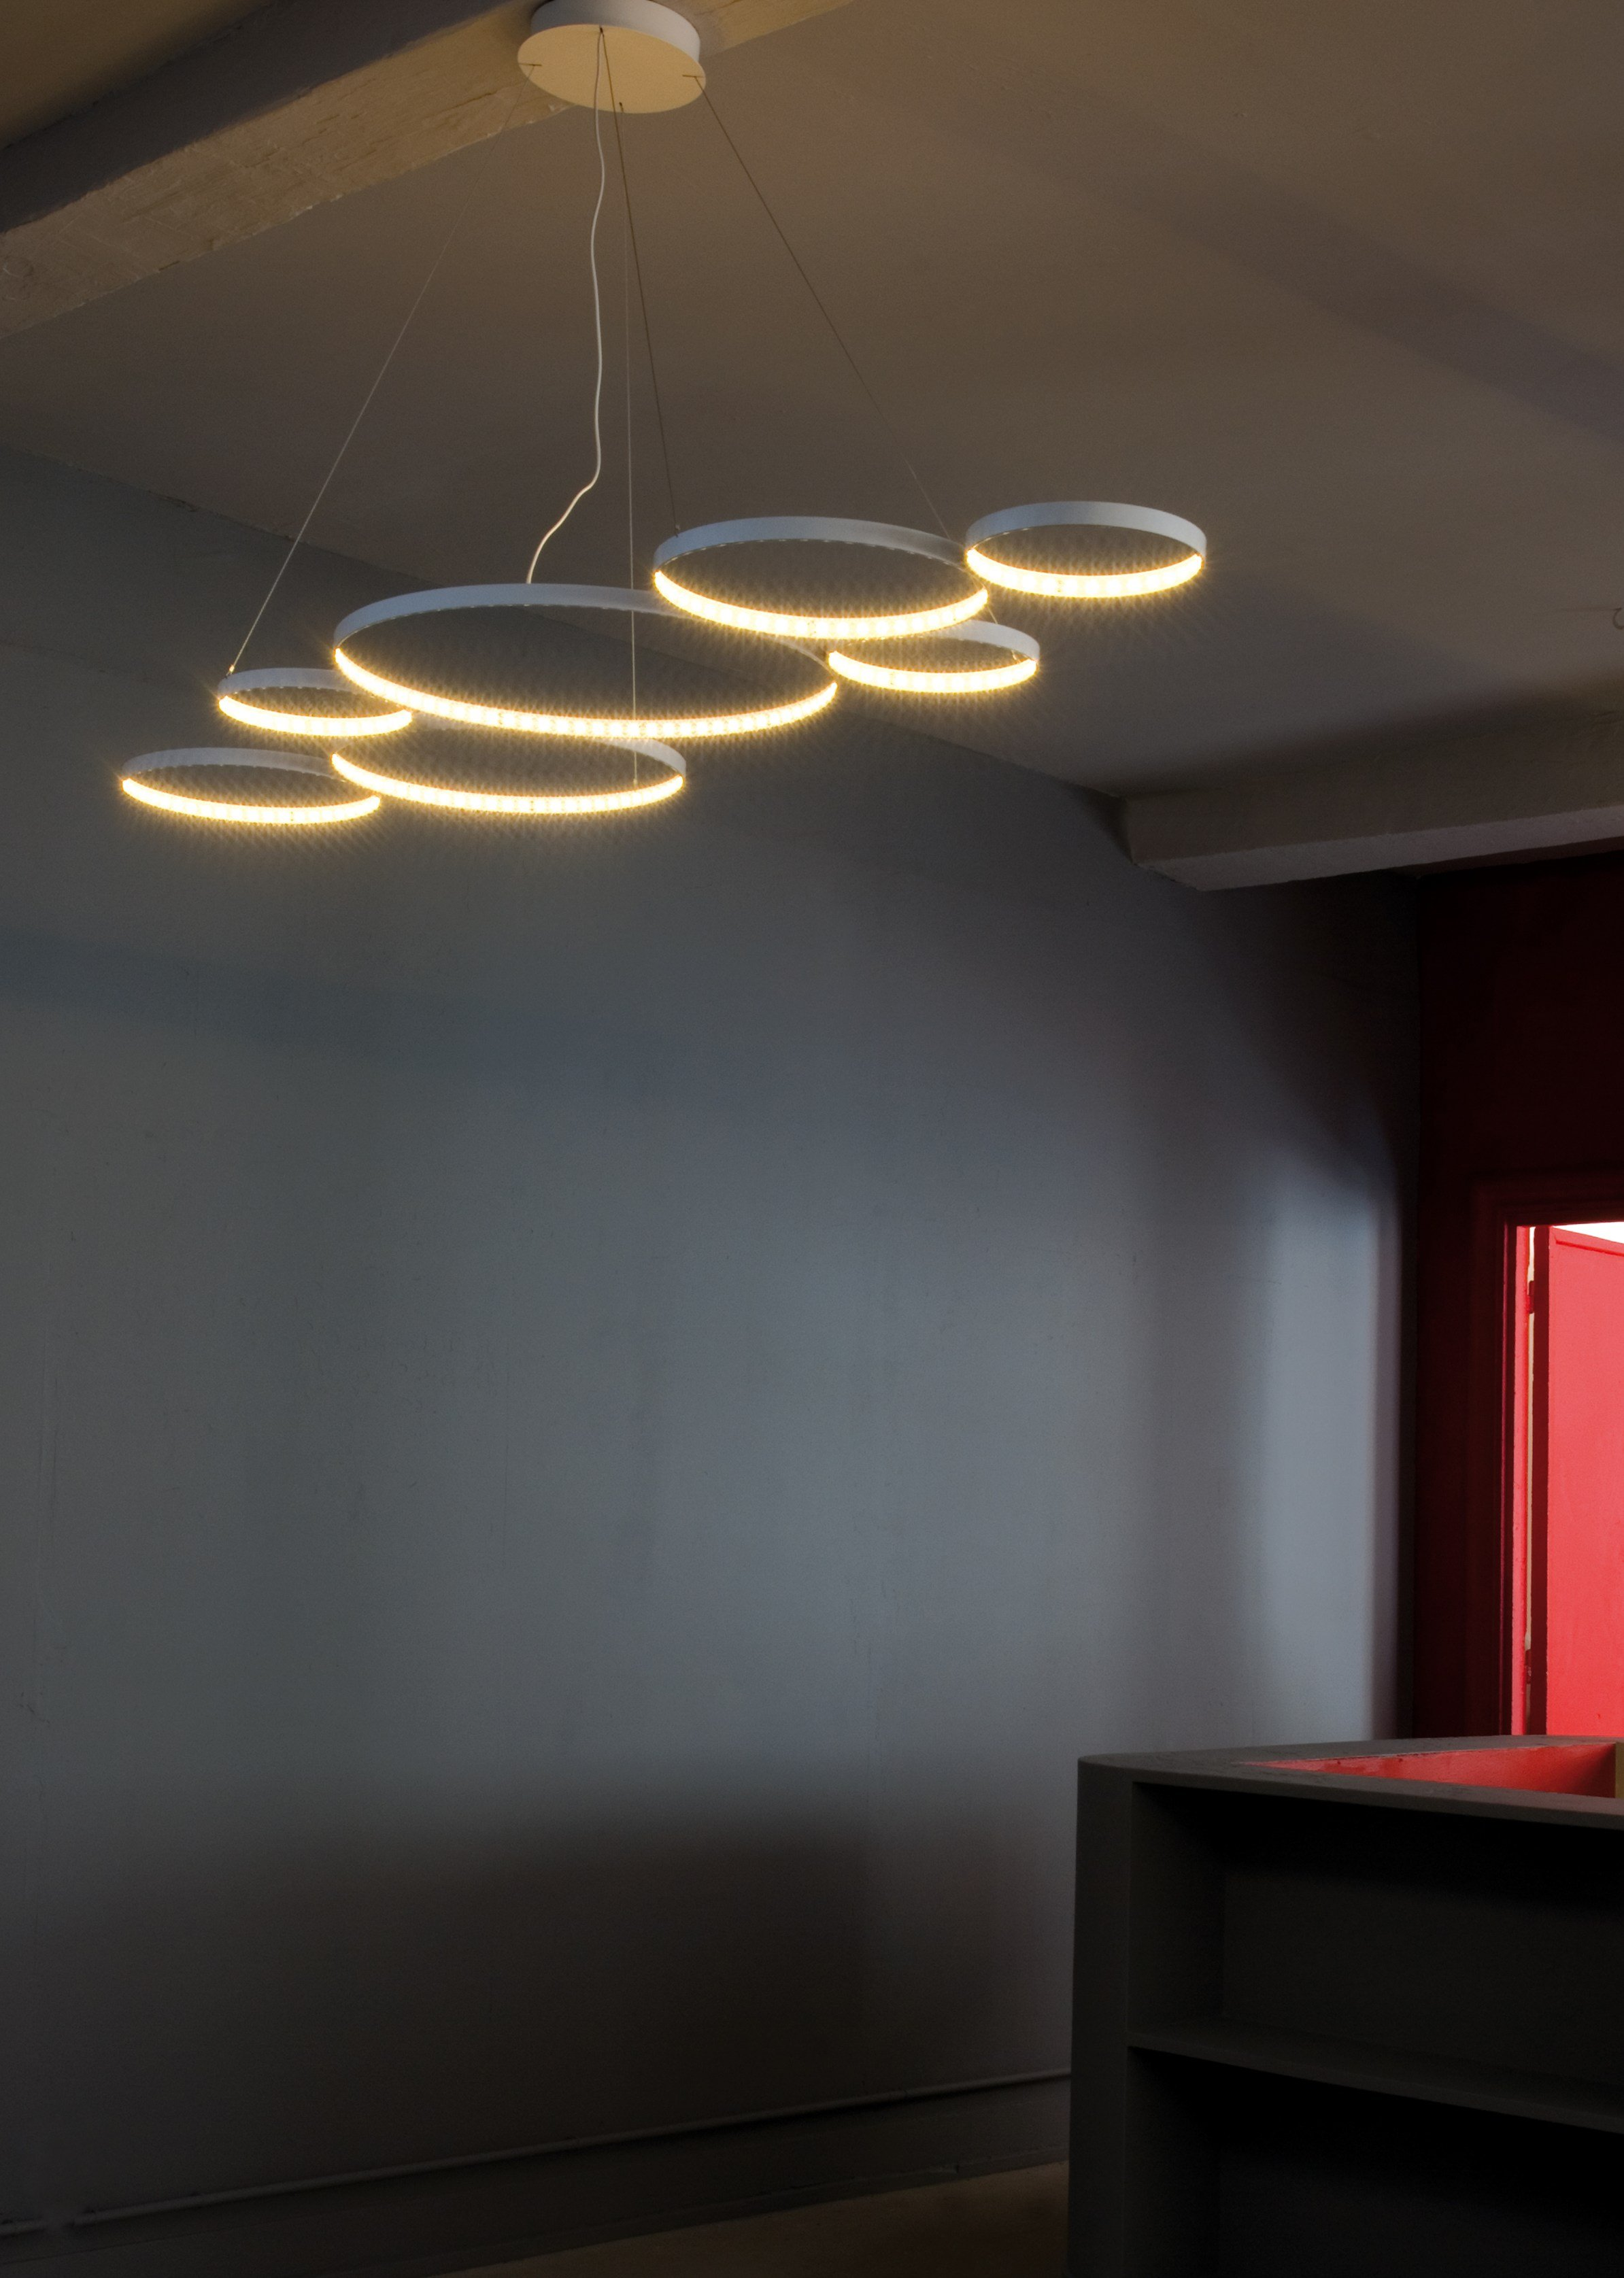 LED direct-indirect light pendant lamp ULTRA8 by Le Deun Luminaires